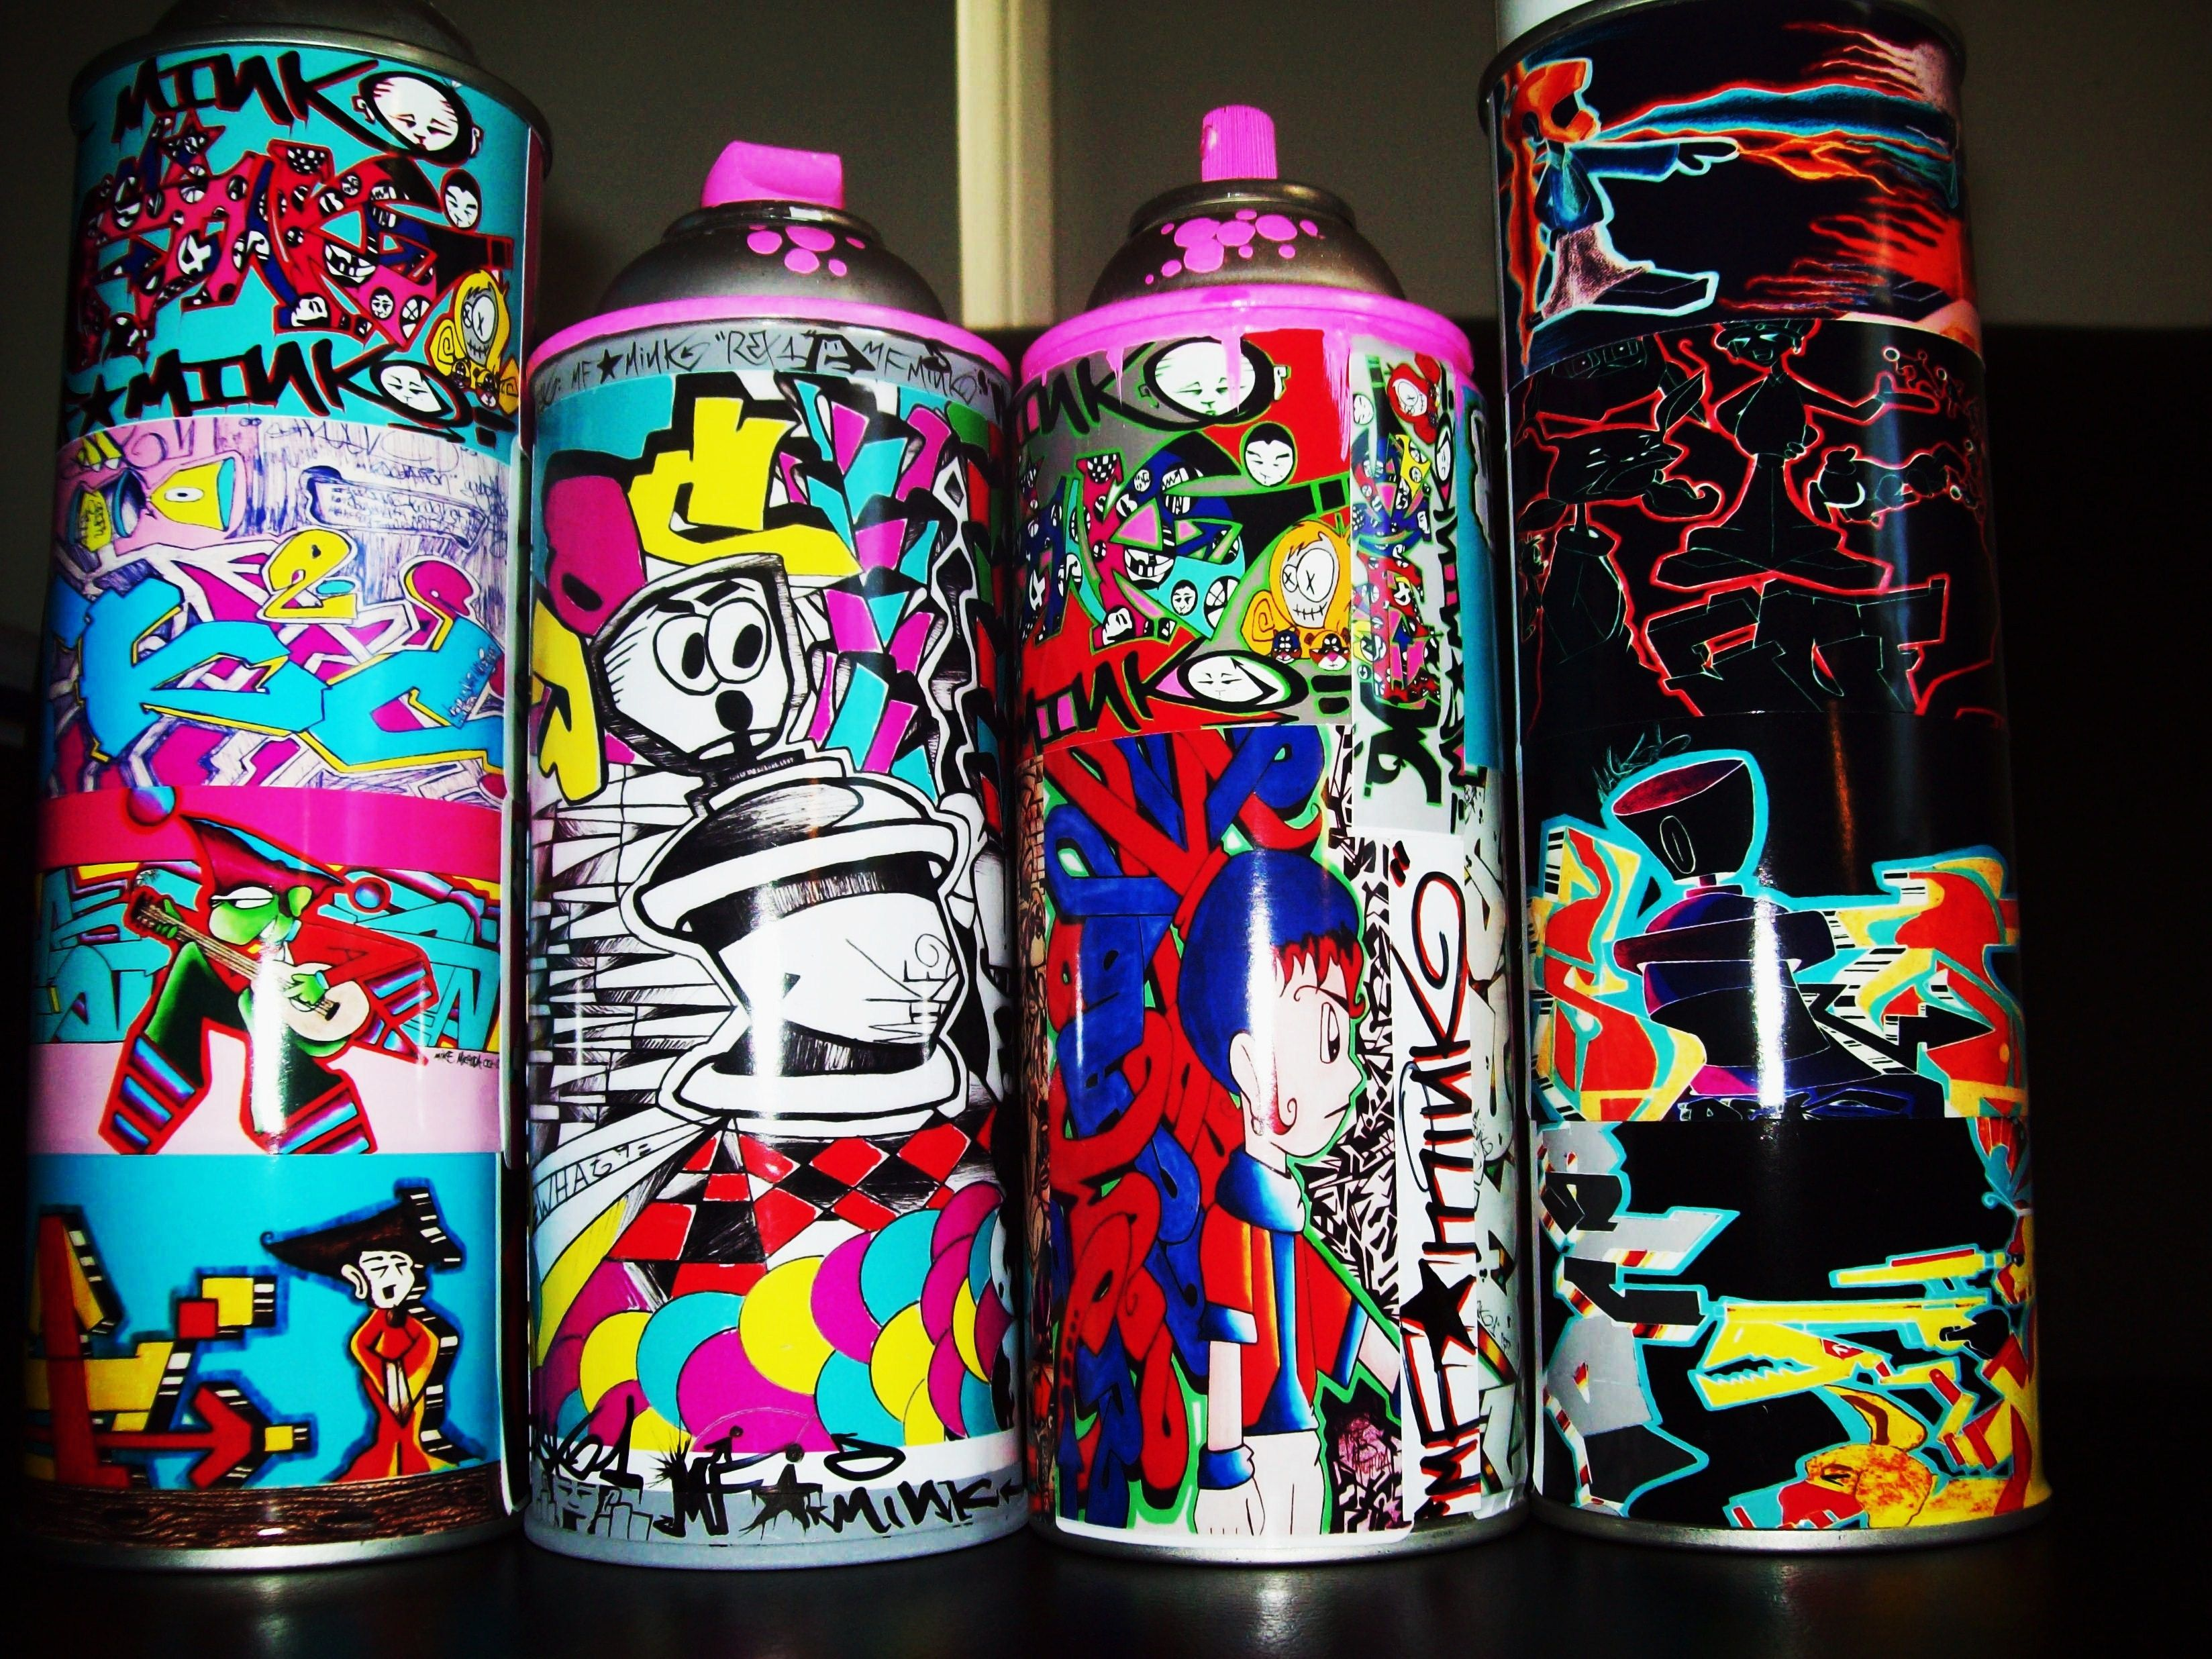 I Made These Out Of Old Empty Spray Paint Cans I Put A Few